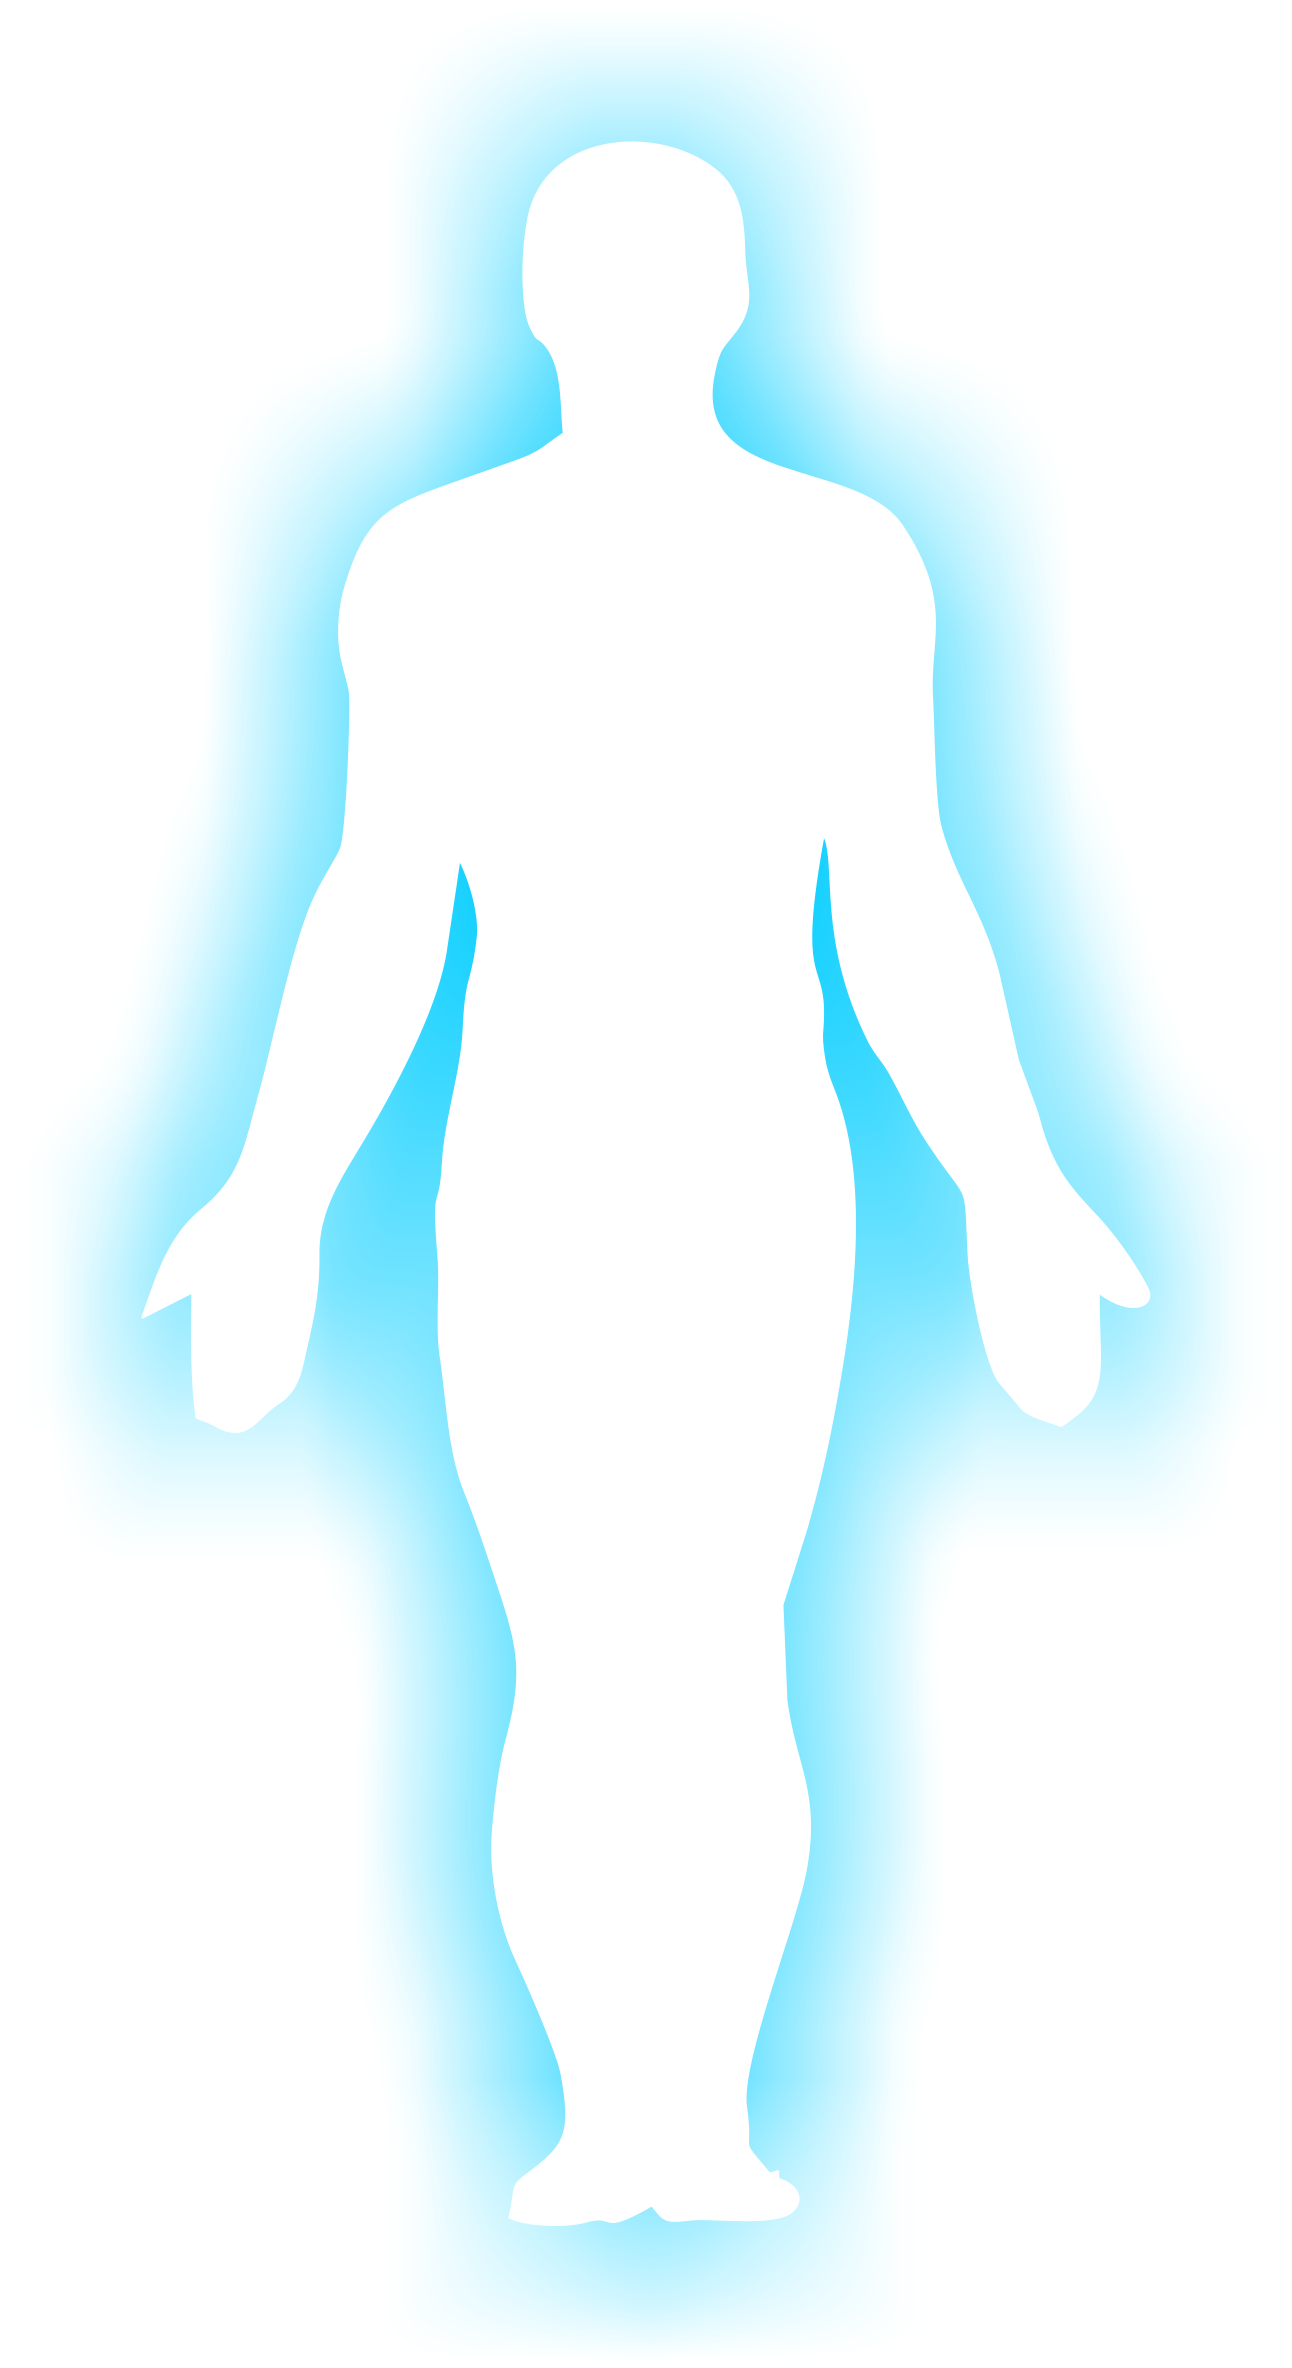 1292x2368 Human Figure Png Hd Transparent Human Figure Hd.png Images. Pluspng